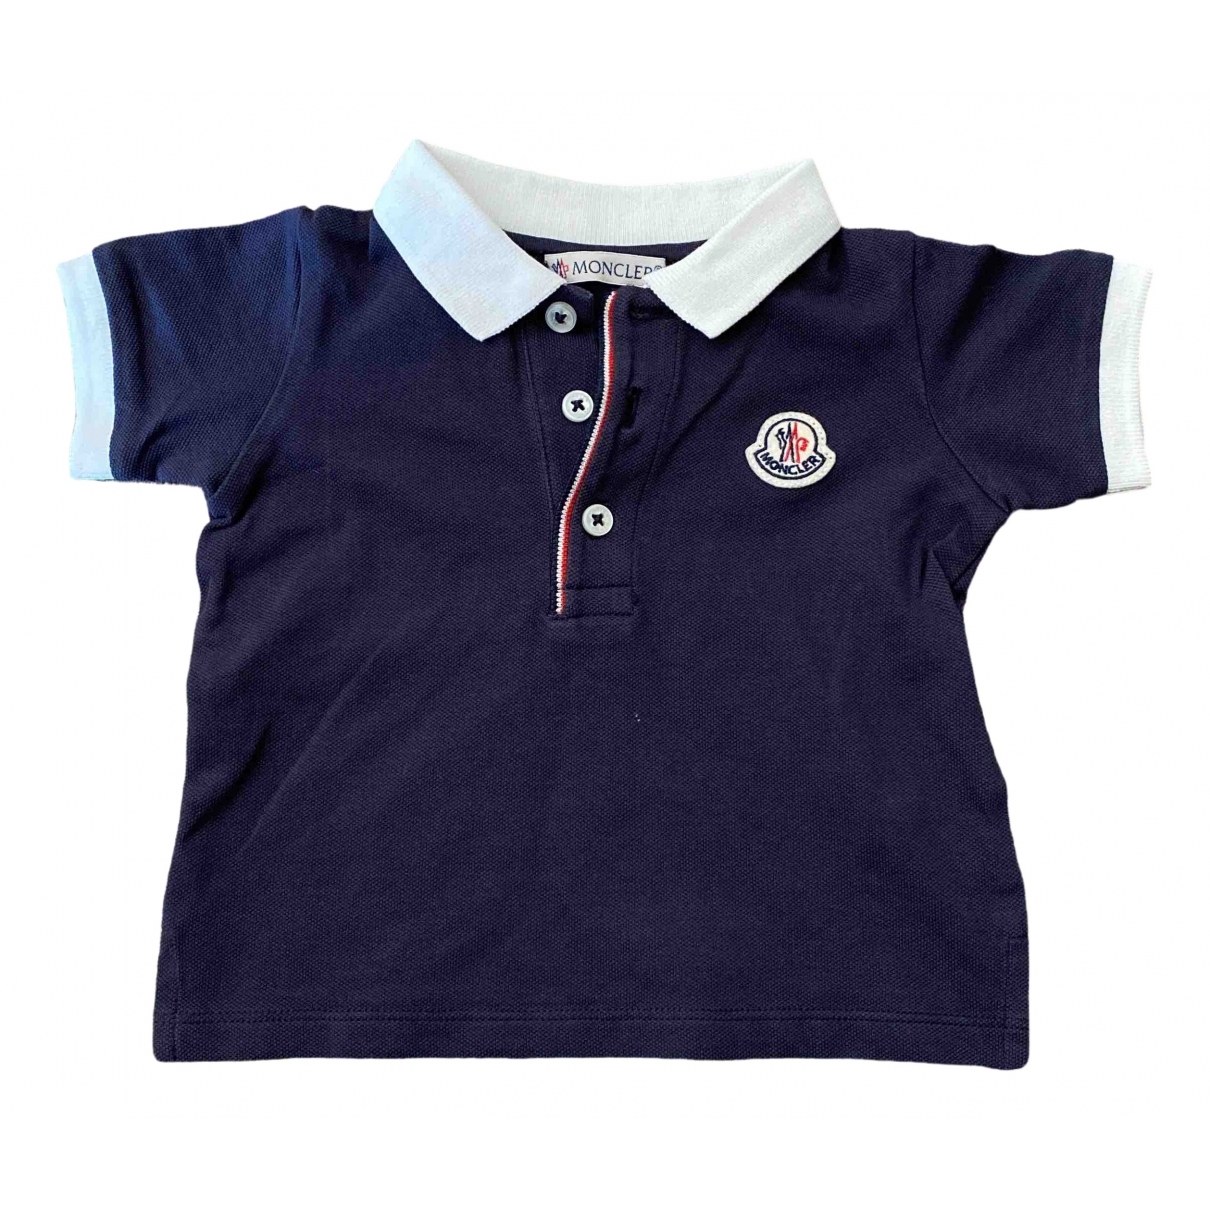 Moncler \N Blue Cotton Knitwear for Kids 6 months - up to 67cm FR